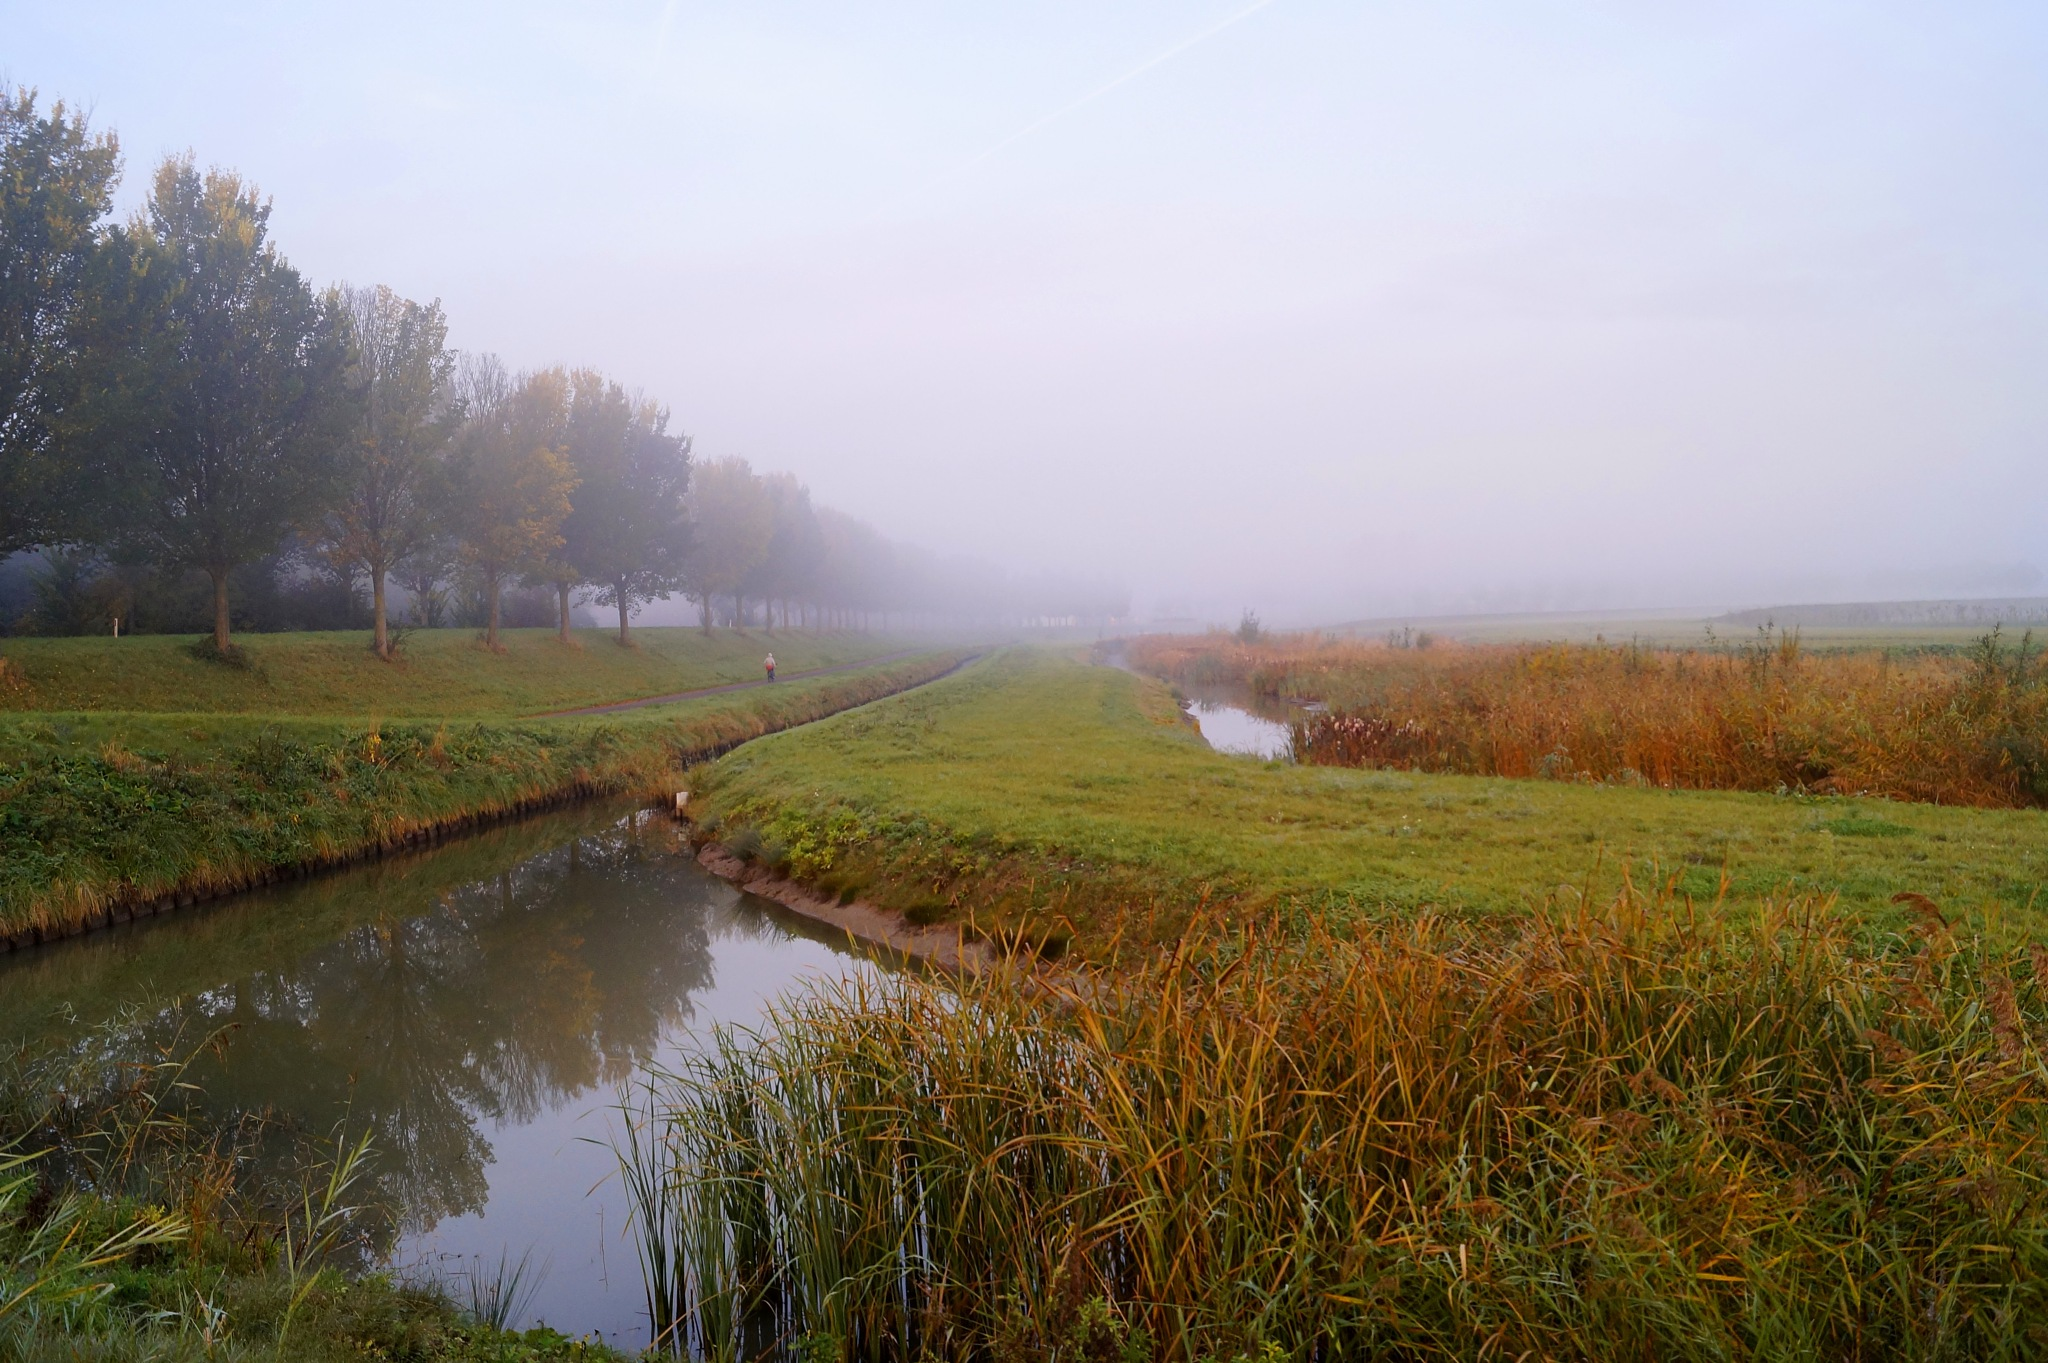 Dutch Countryside in the Mist by Marian Baay